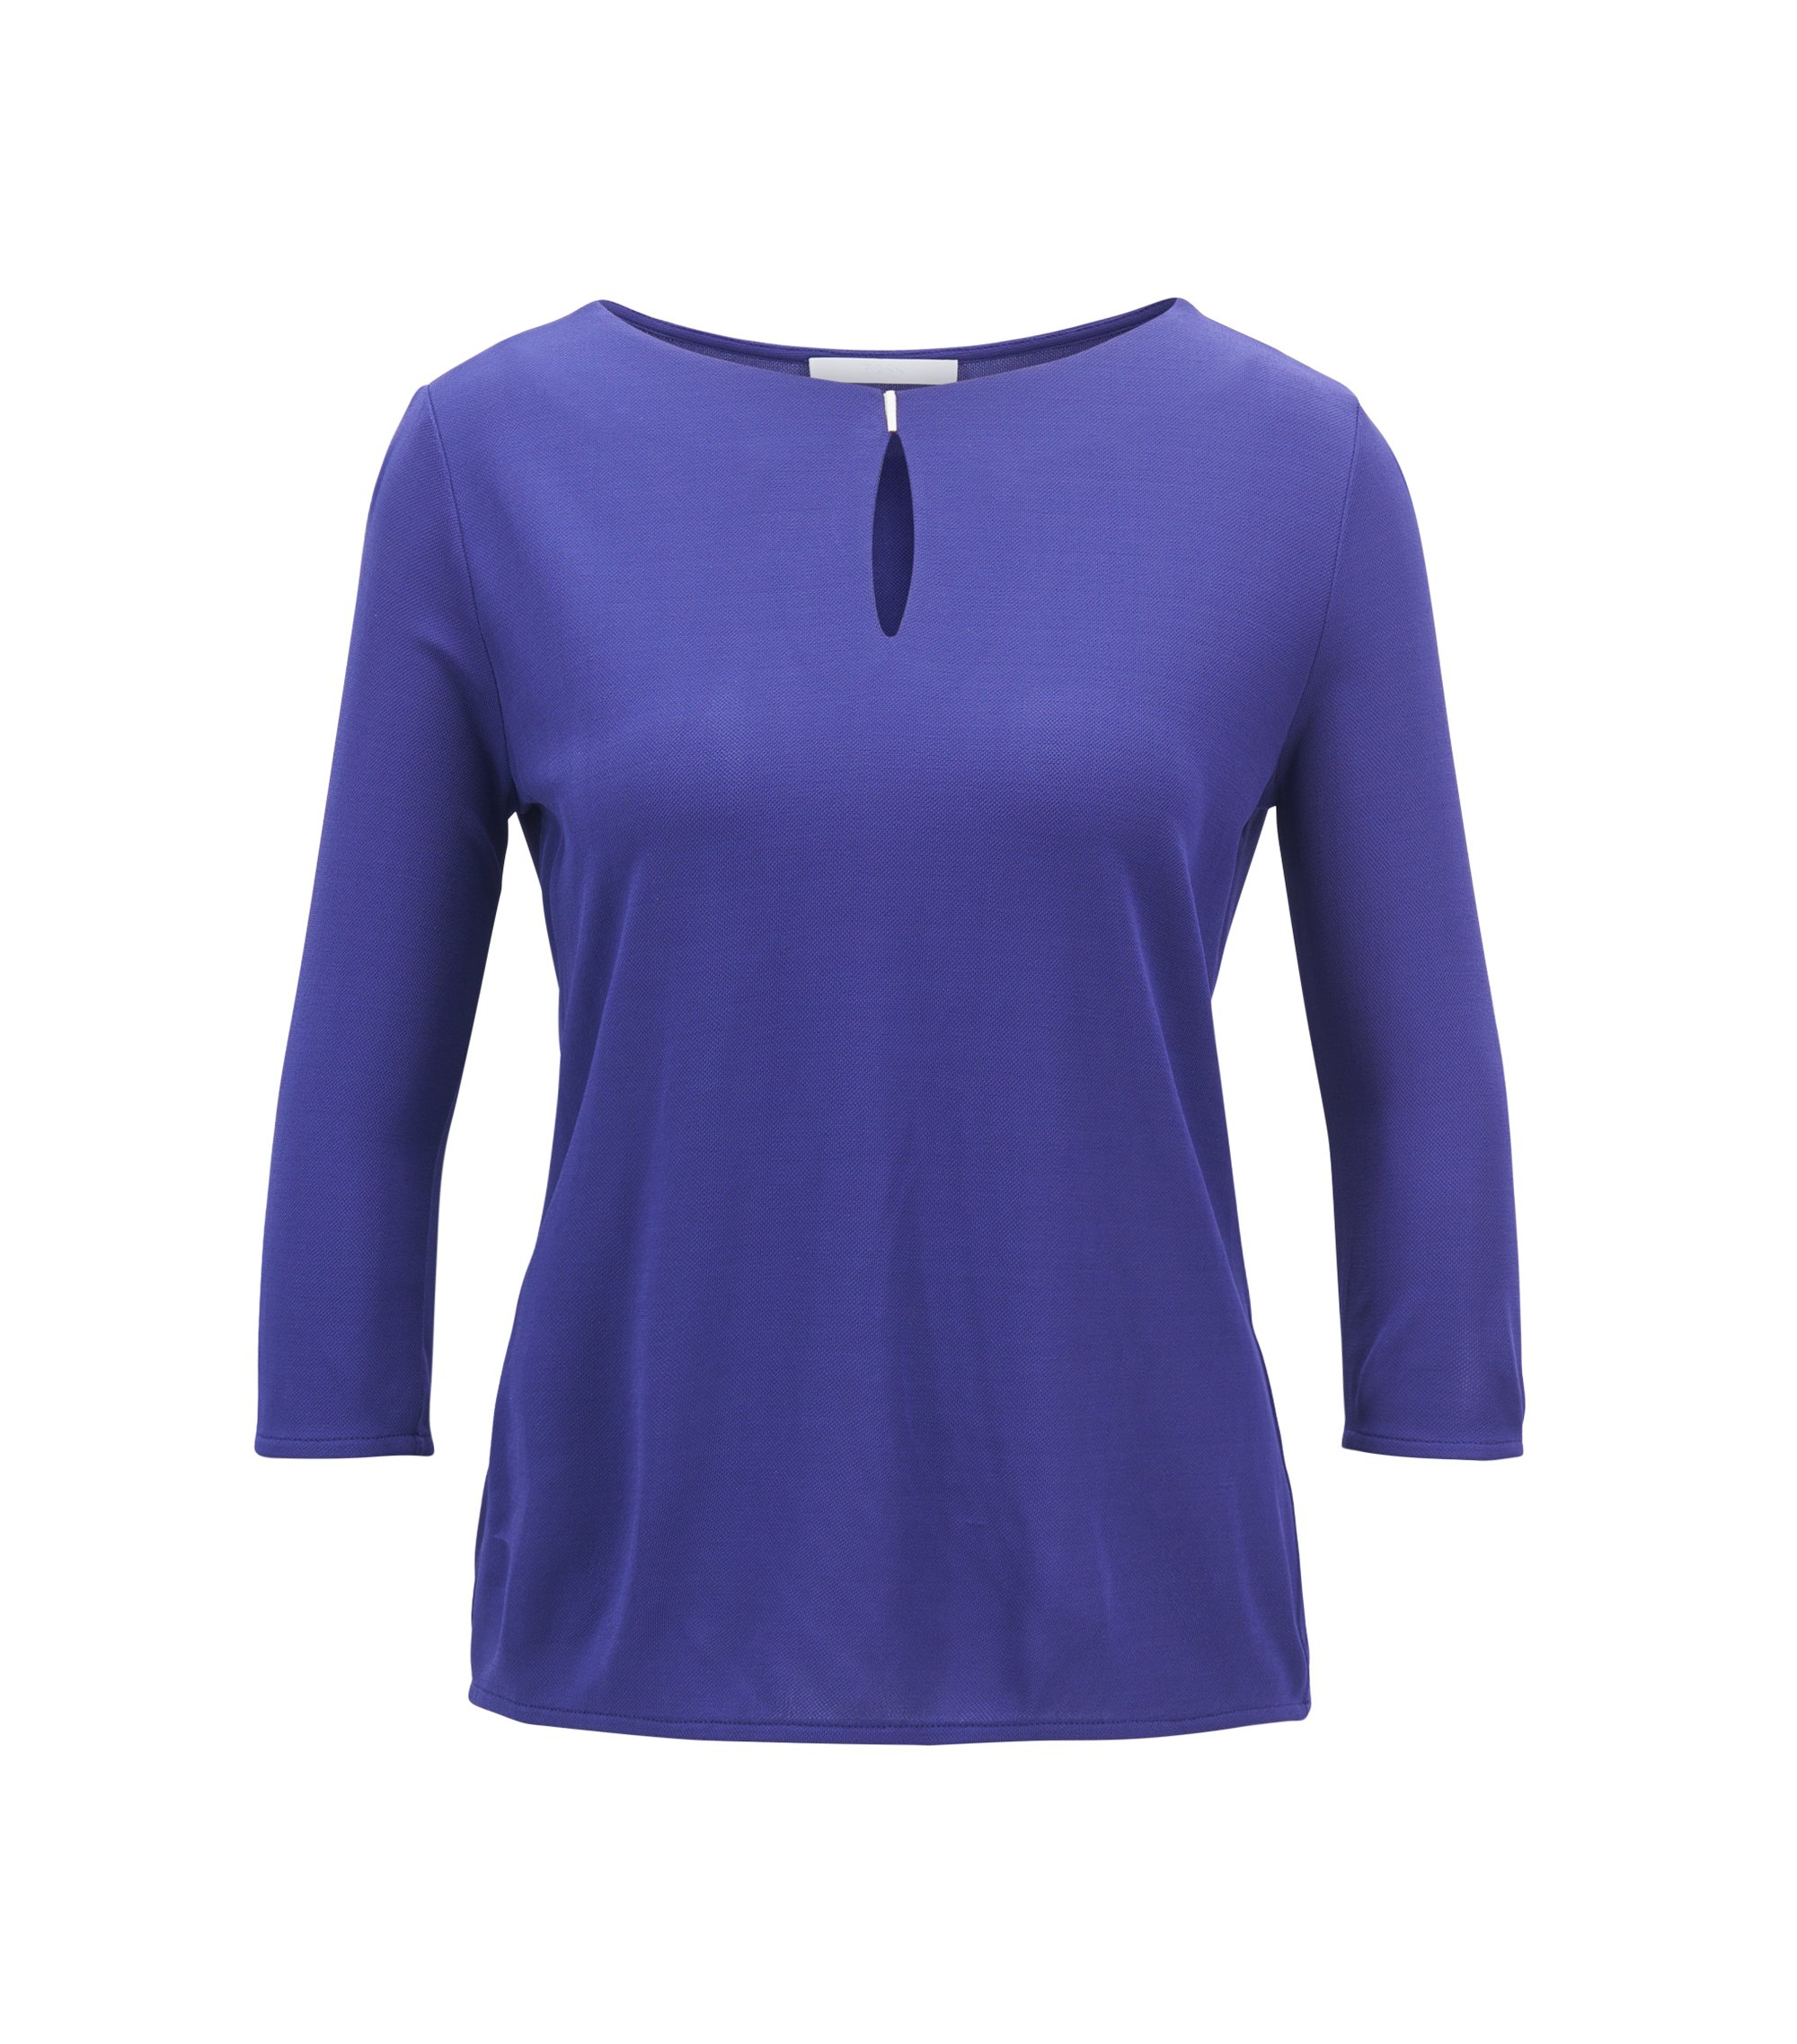 Keyhole-neck top in matt crepe jersey, Purple